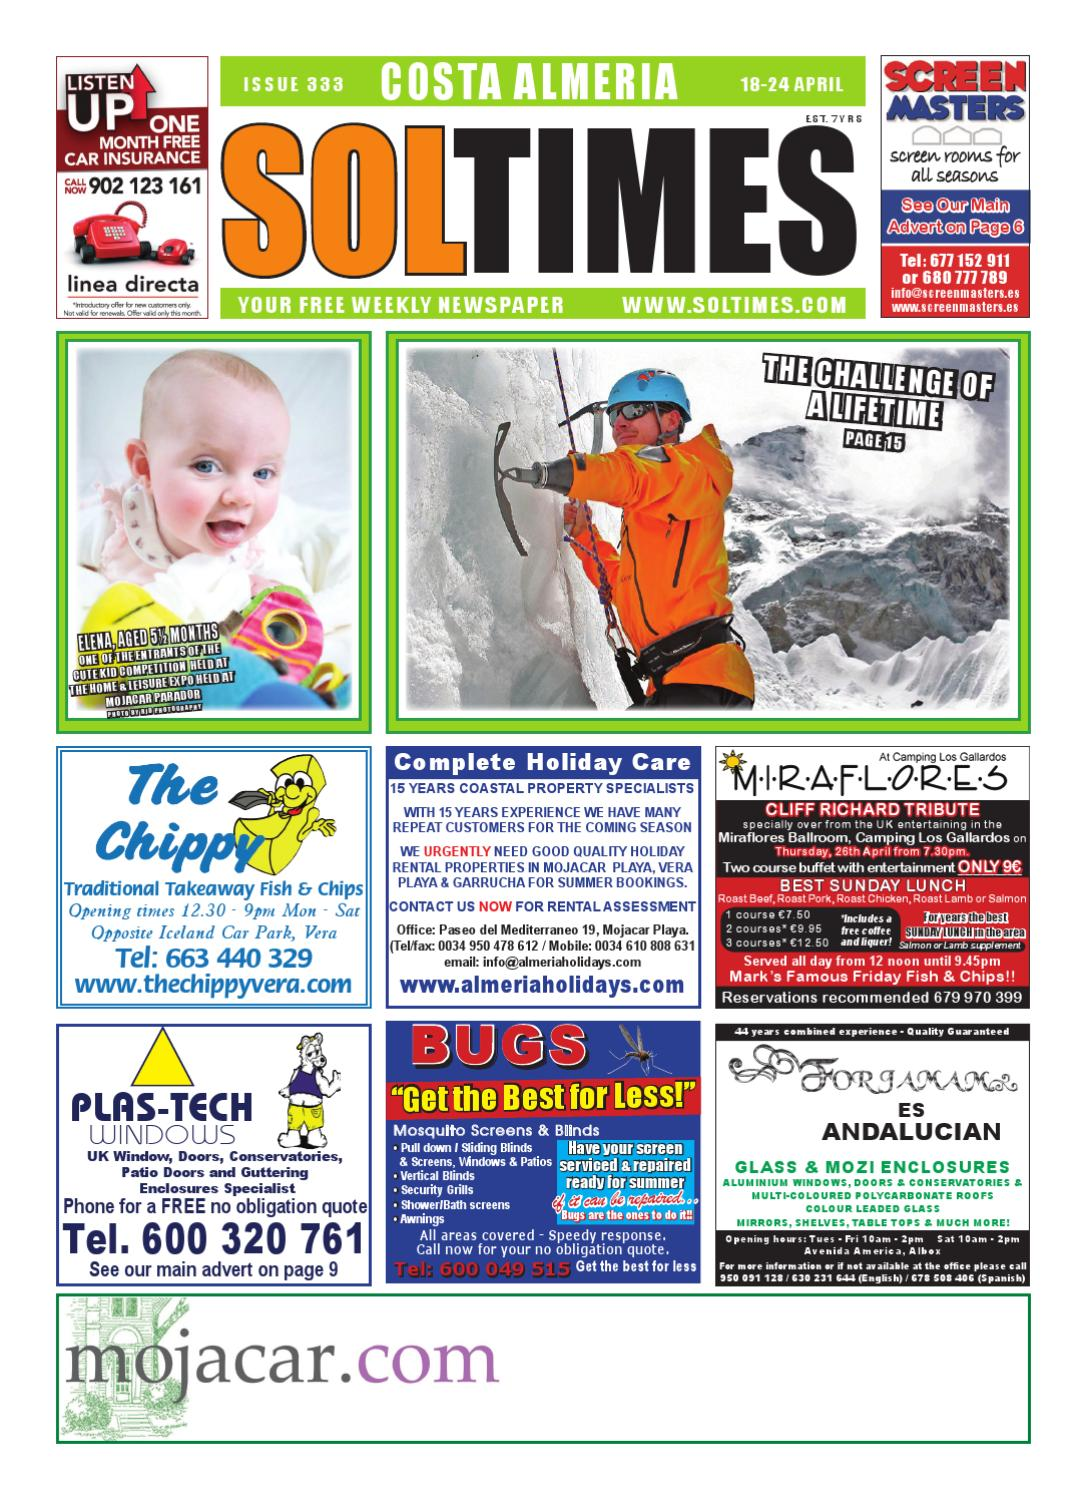 Sol Times Newspaper Issue 333 Costa Almeria Edition By Nigel  # Muebles Anticrisis Fitness